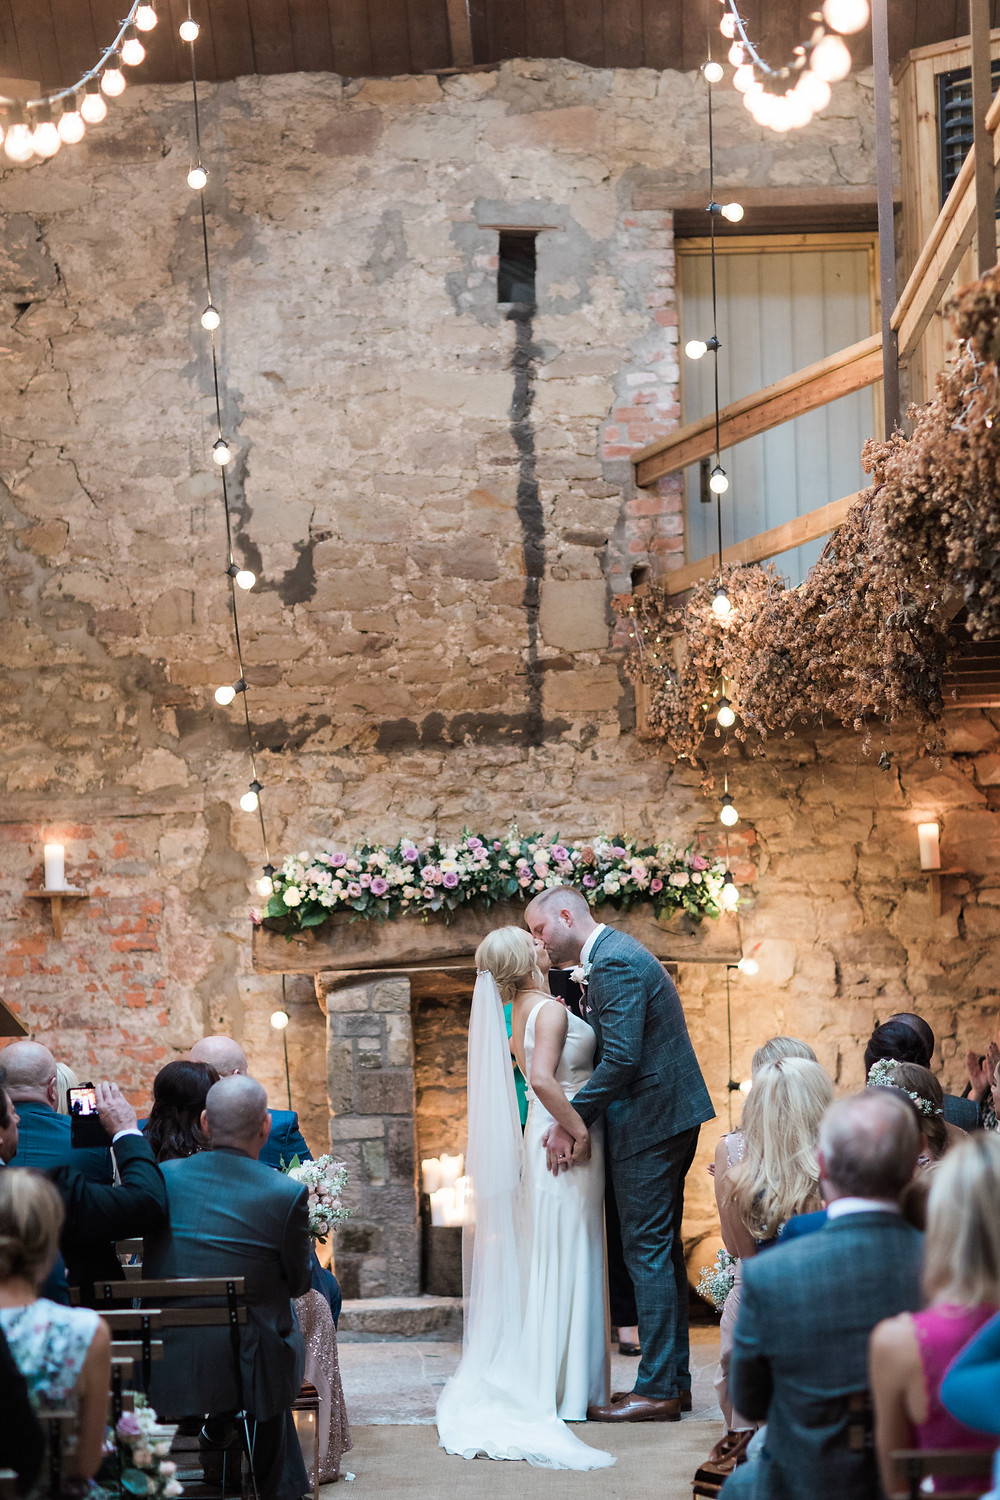 doxford barn wedding threshing hall wedding ceremony flowers